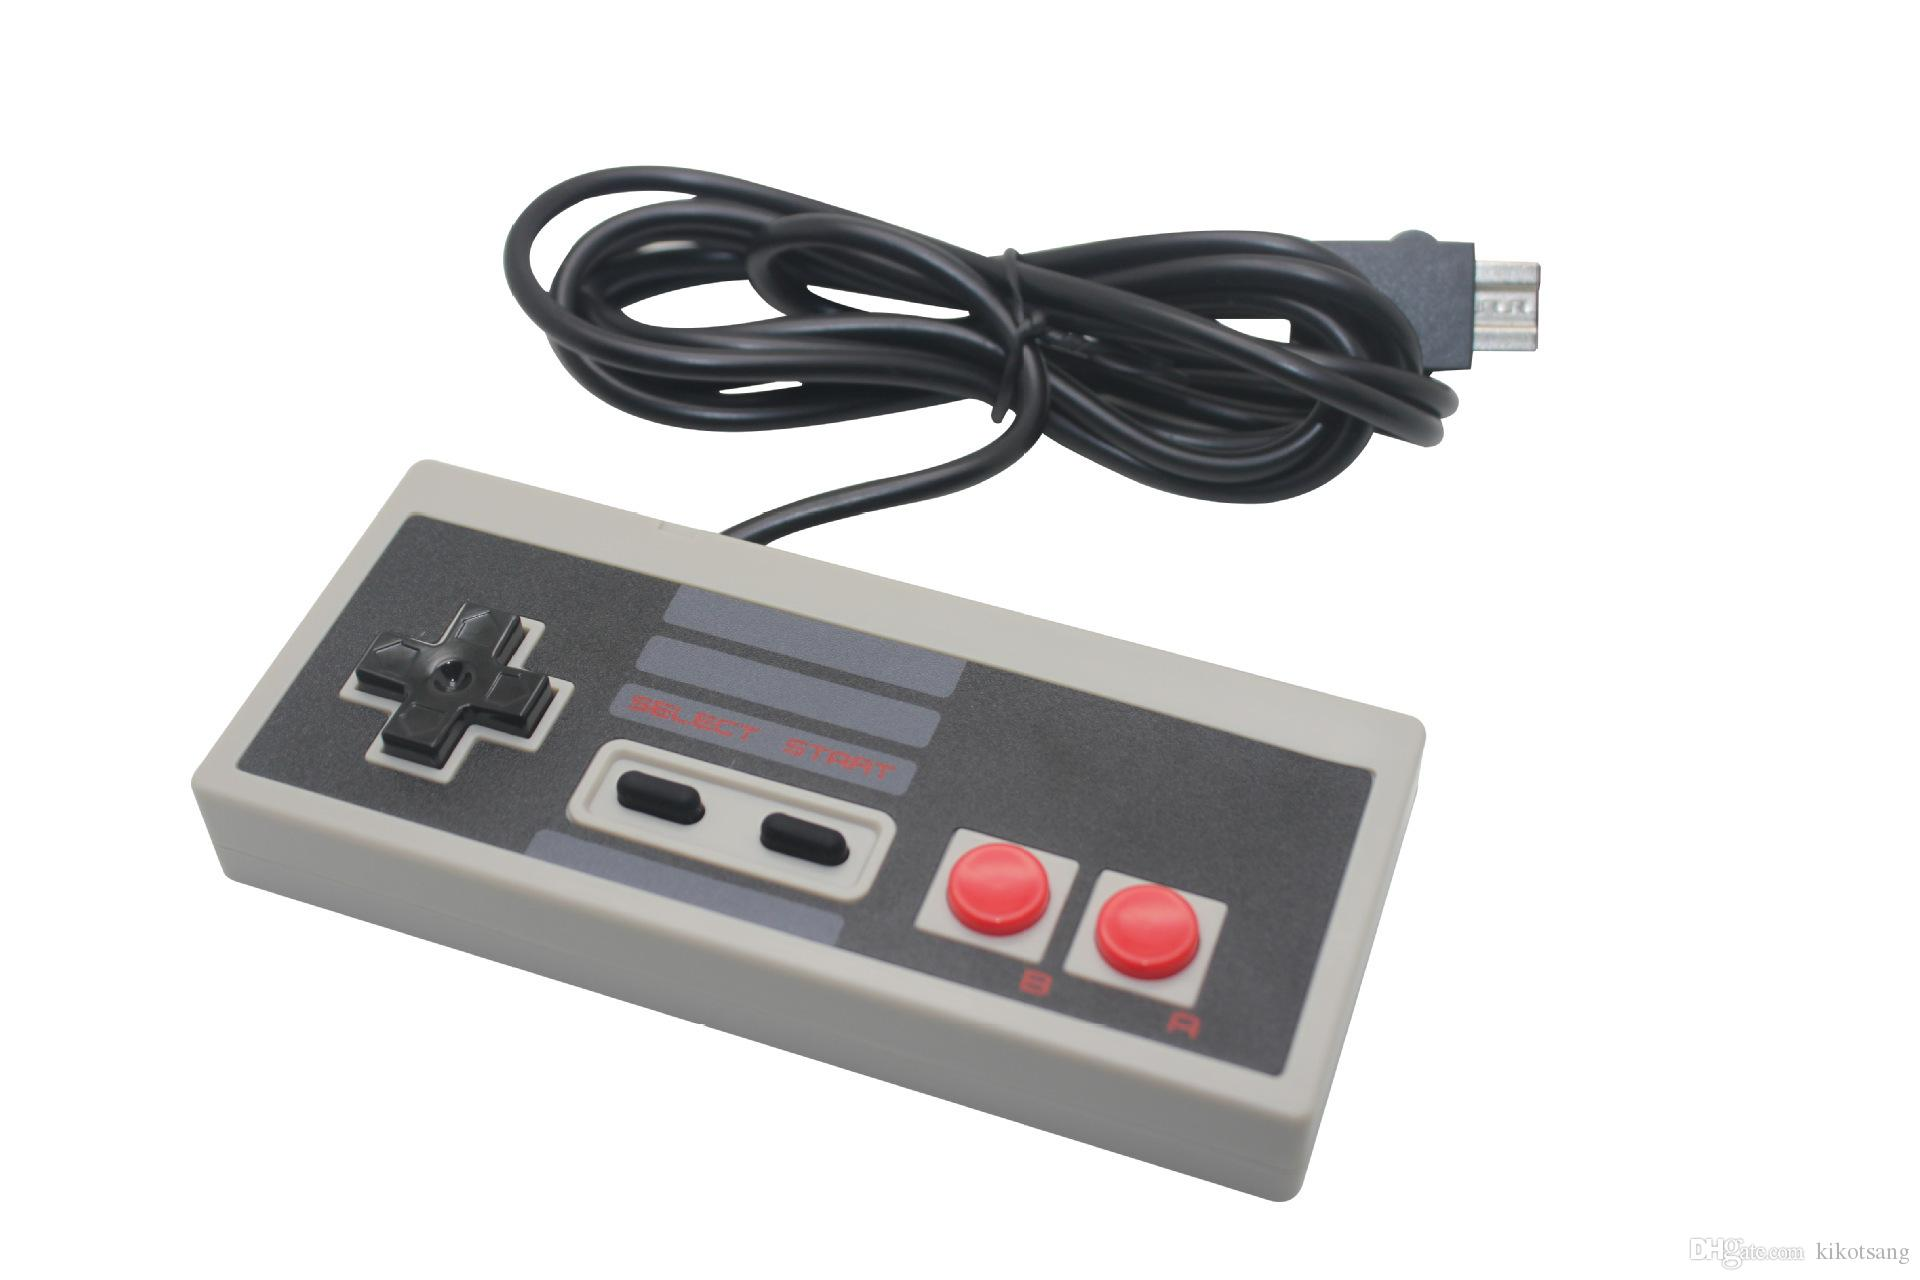 wired retro style game controllers game joystick cable gamepad for